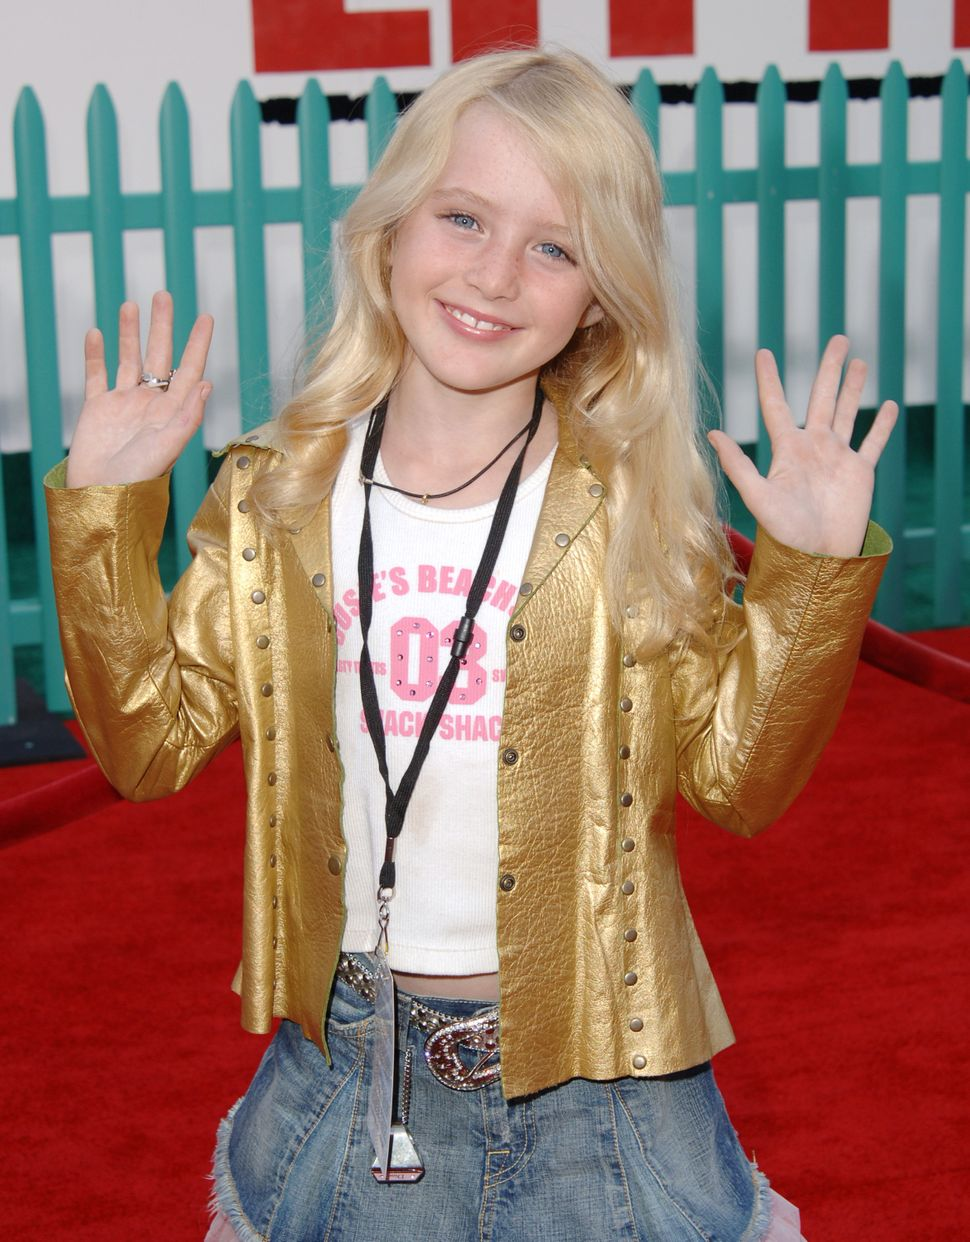 Kathryn Newton during 'Chicken Little' Los Angeles Premiere at El Capitan Theater in Hollywood, California, in 2005.